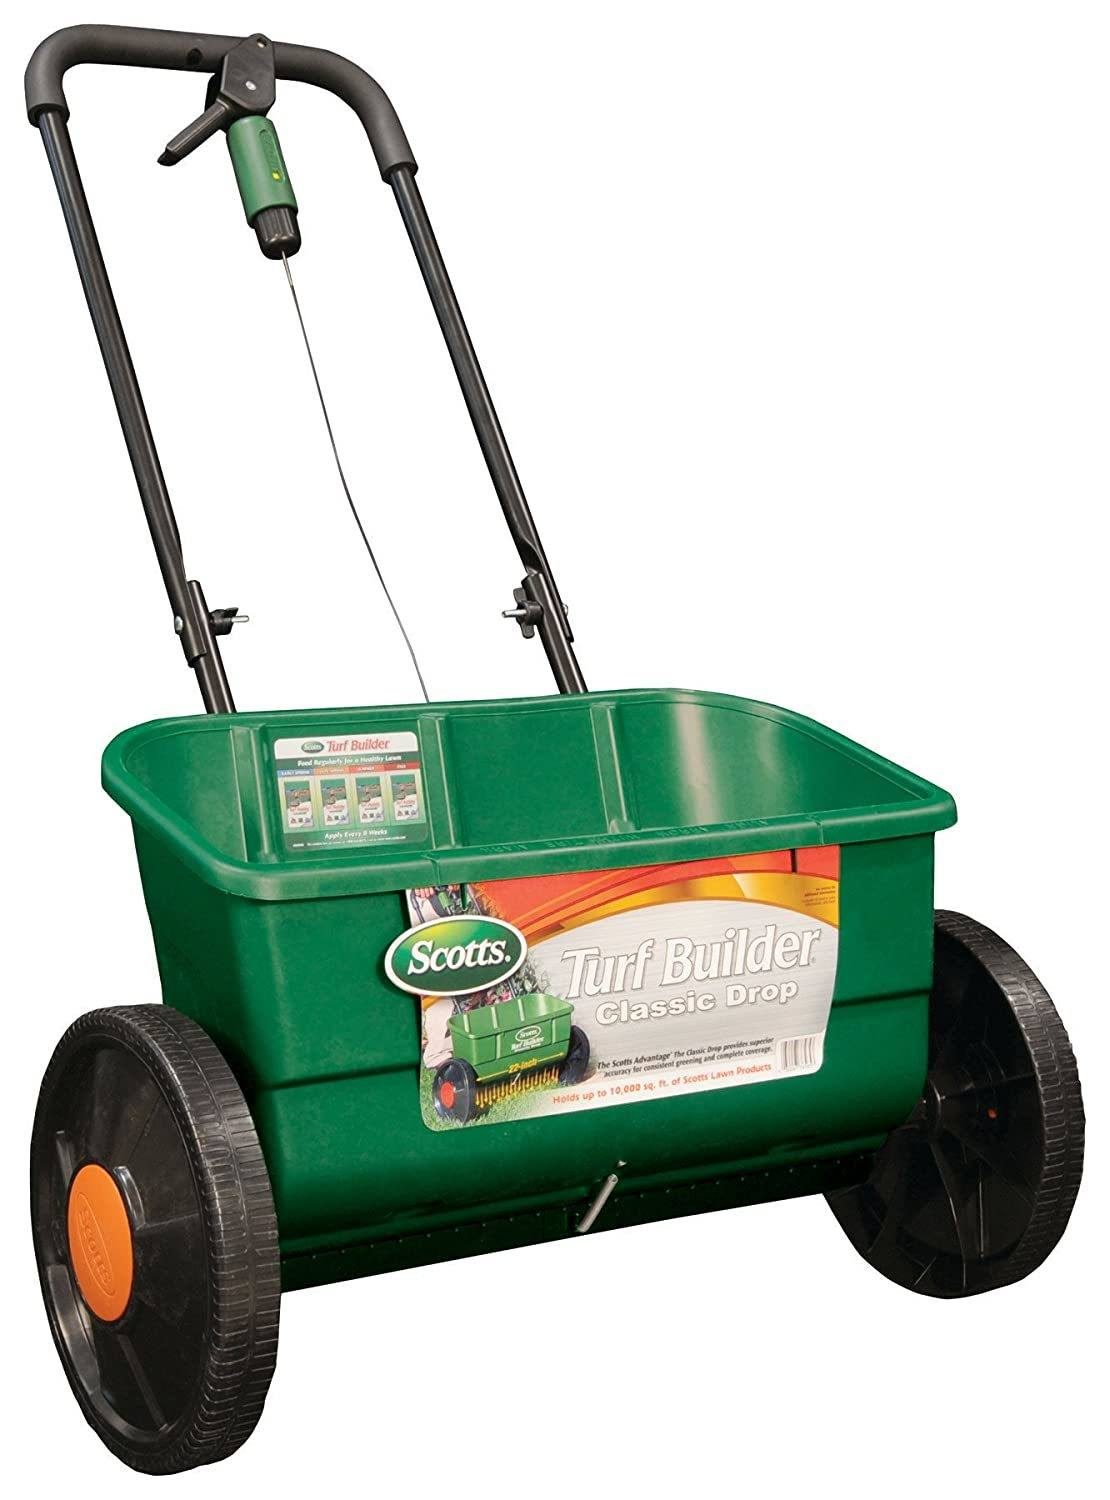 Scotts best lawn drop fertilizer spreader in 2020